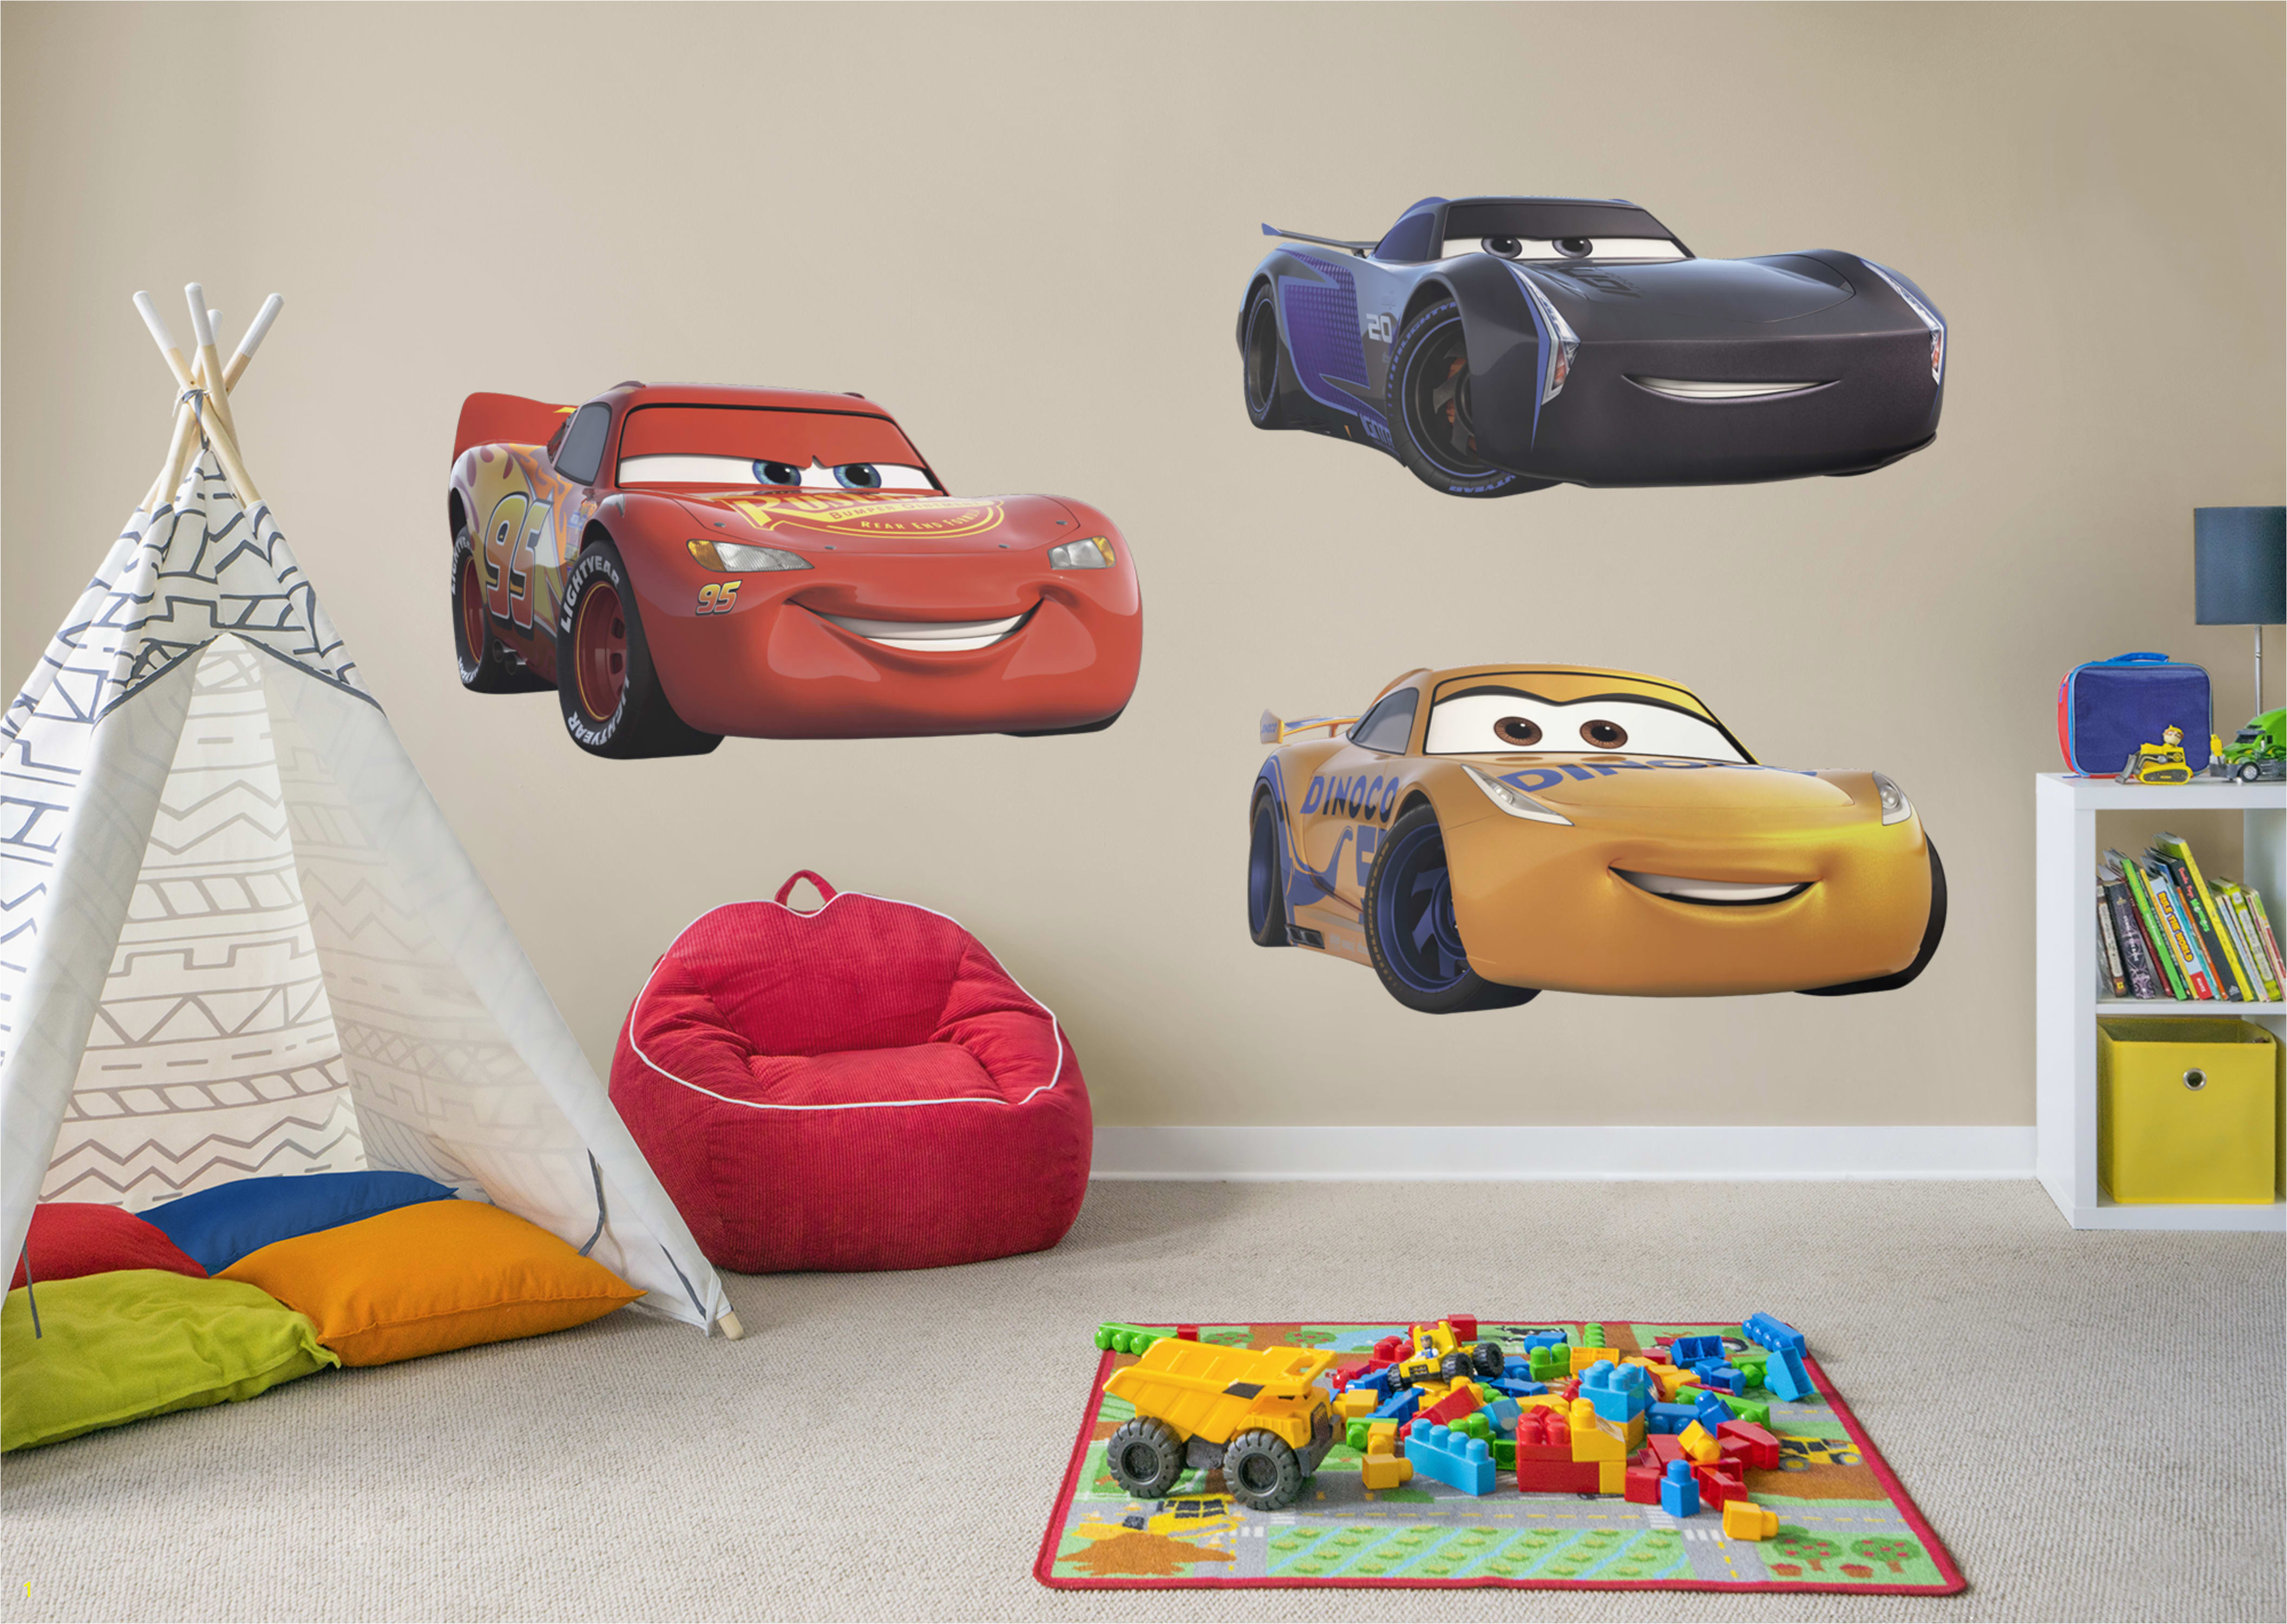 Cars 3 Collection Giant ficially Licensed Disney PIXAR Removable Wall Decals Fathead